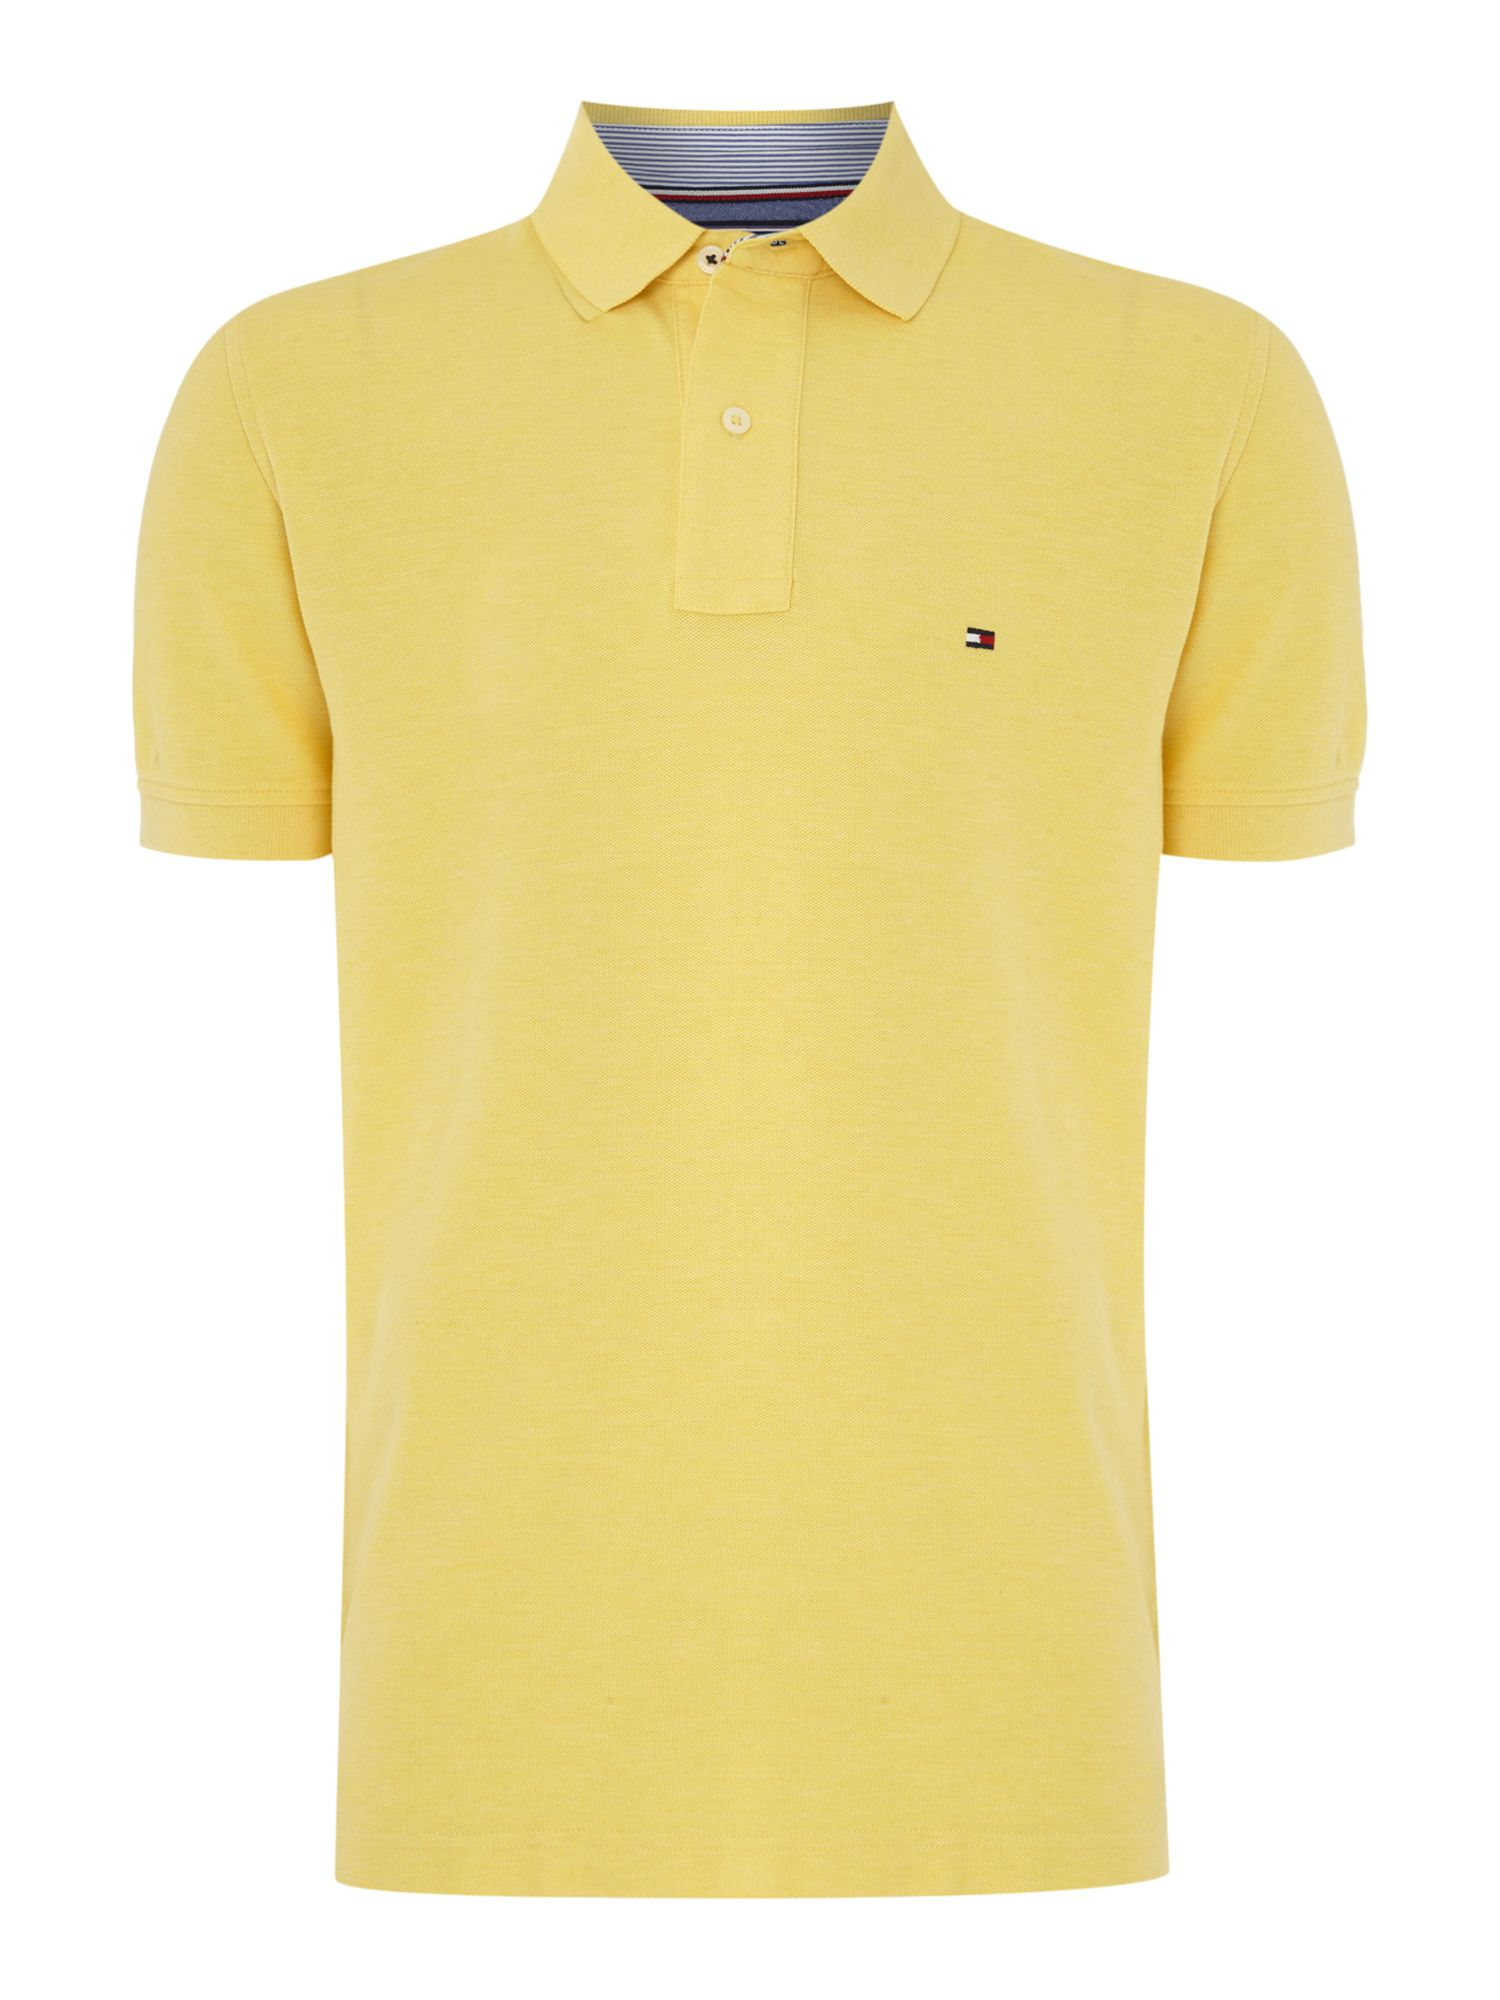 Men's Tommy Hilfiger Regular fit performance polo top, Yellow